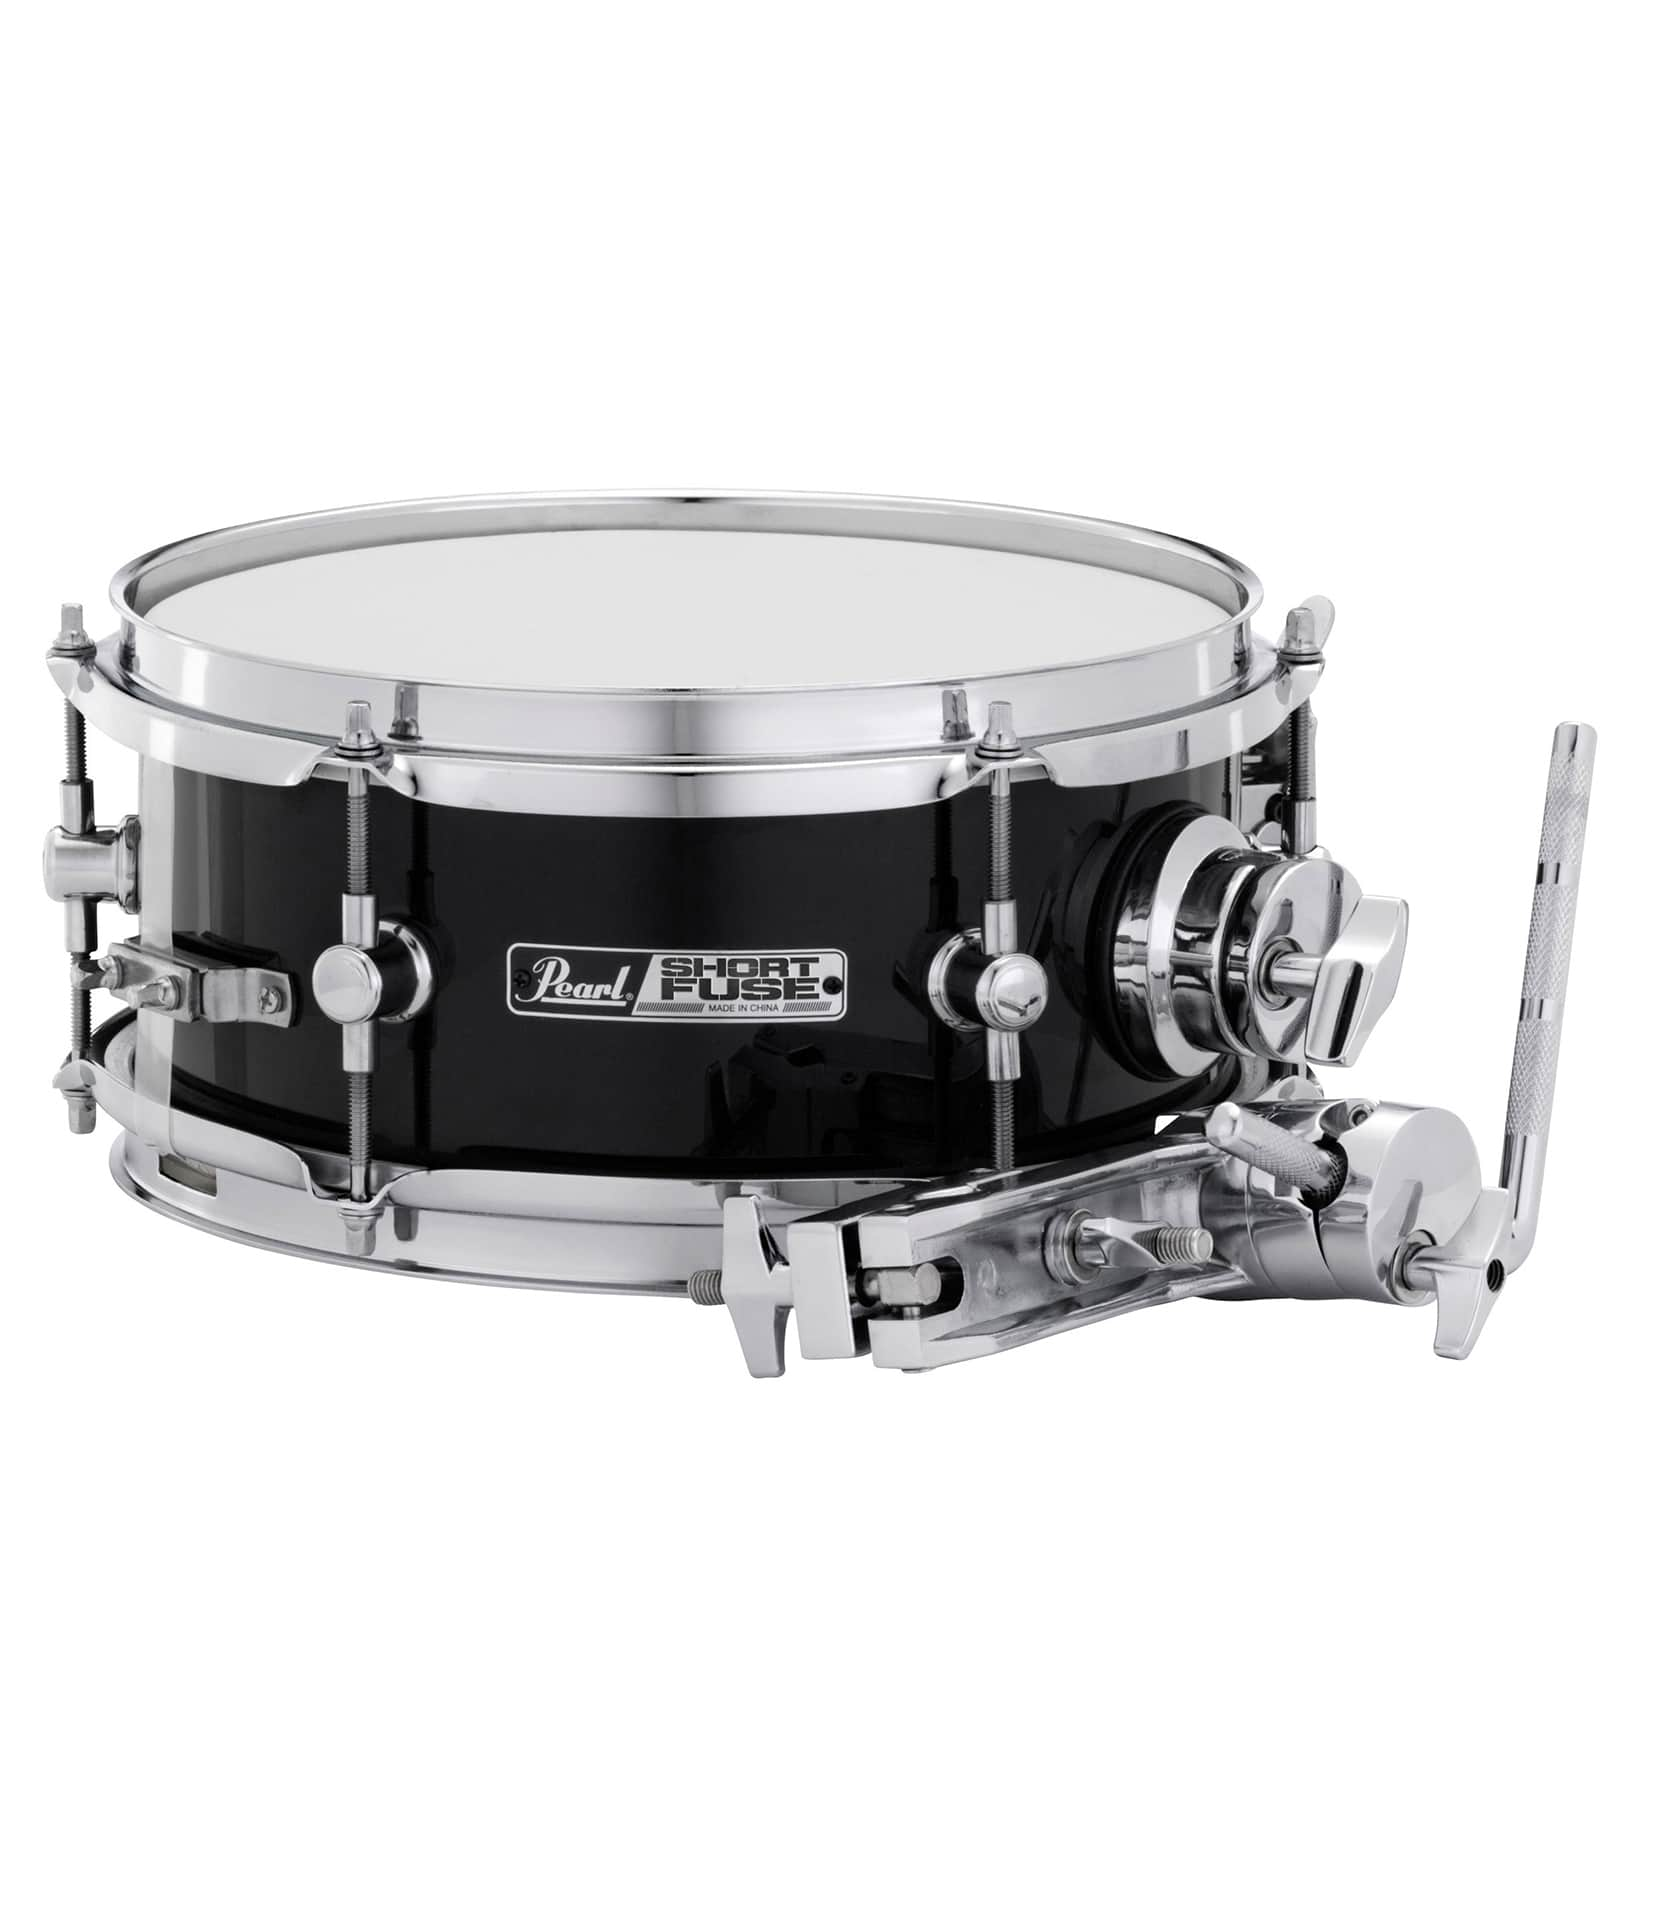 Buy pearl - SFS10 C Short Fuse 10 x 4 5 Snare Drum Black